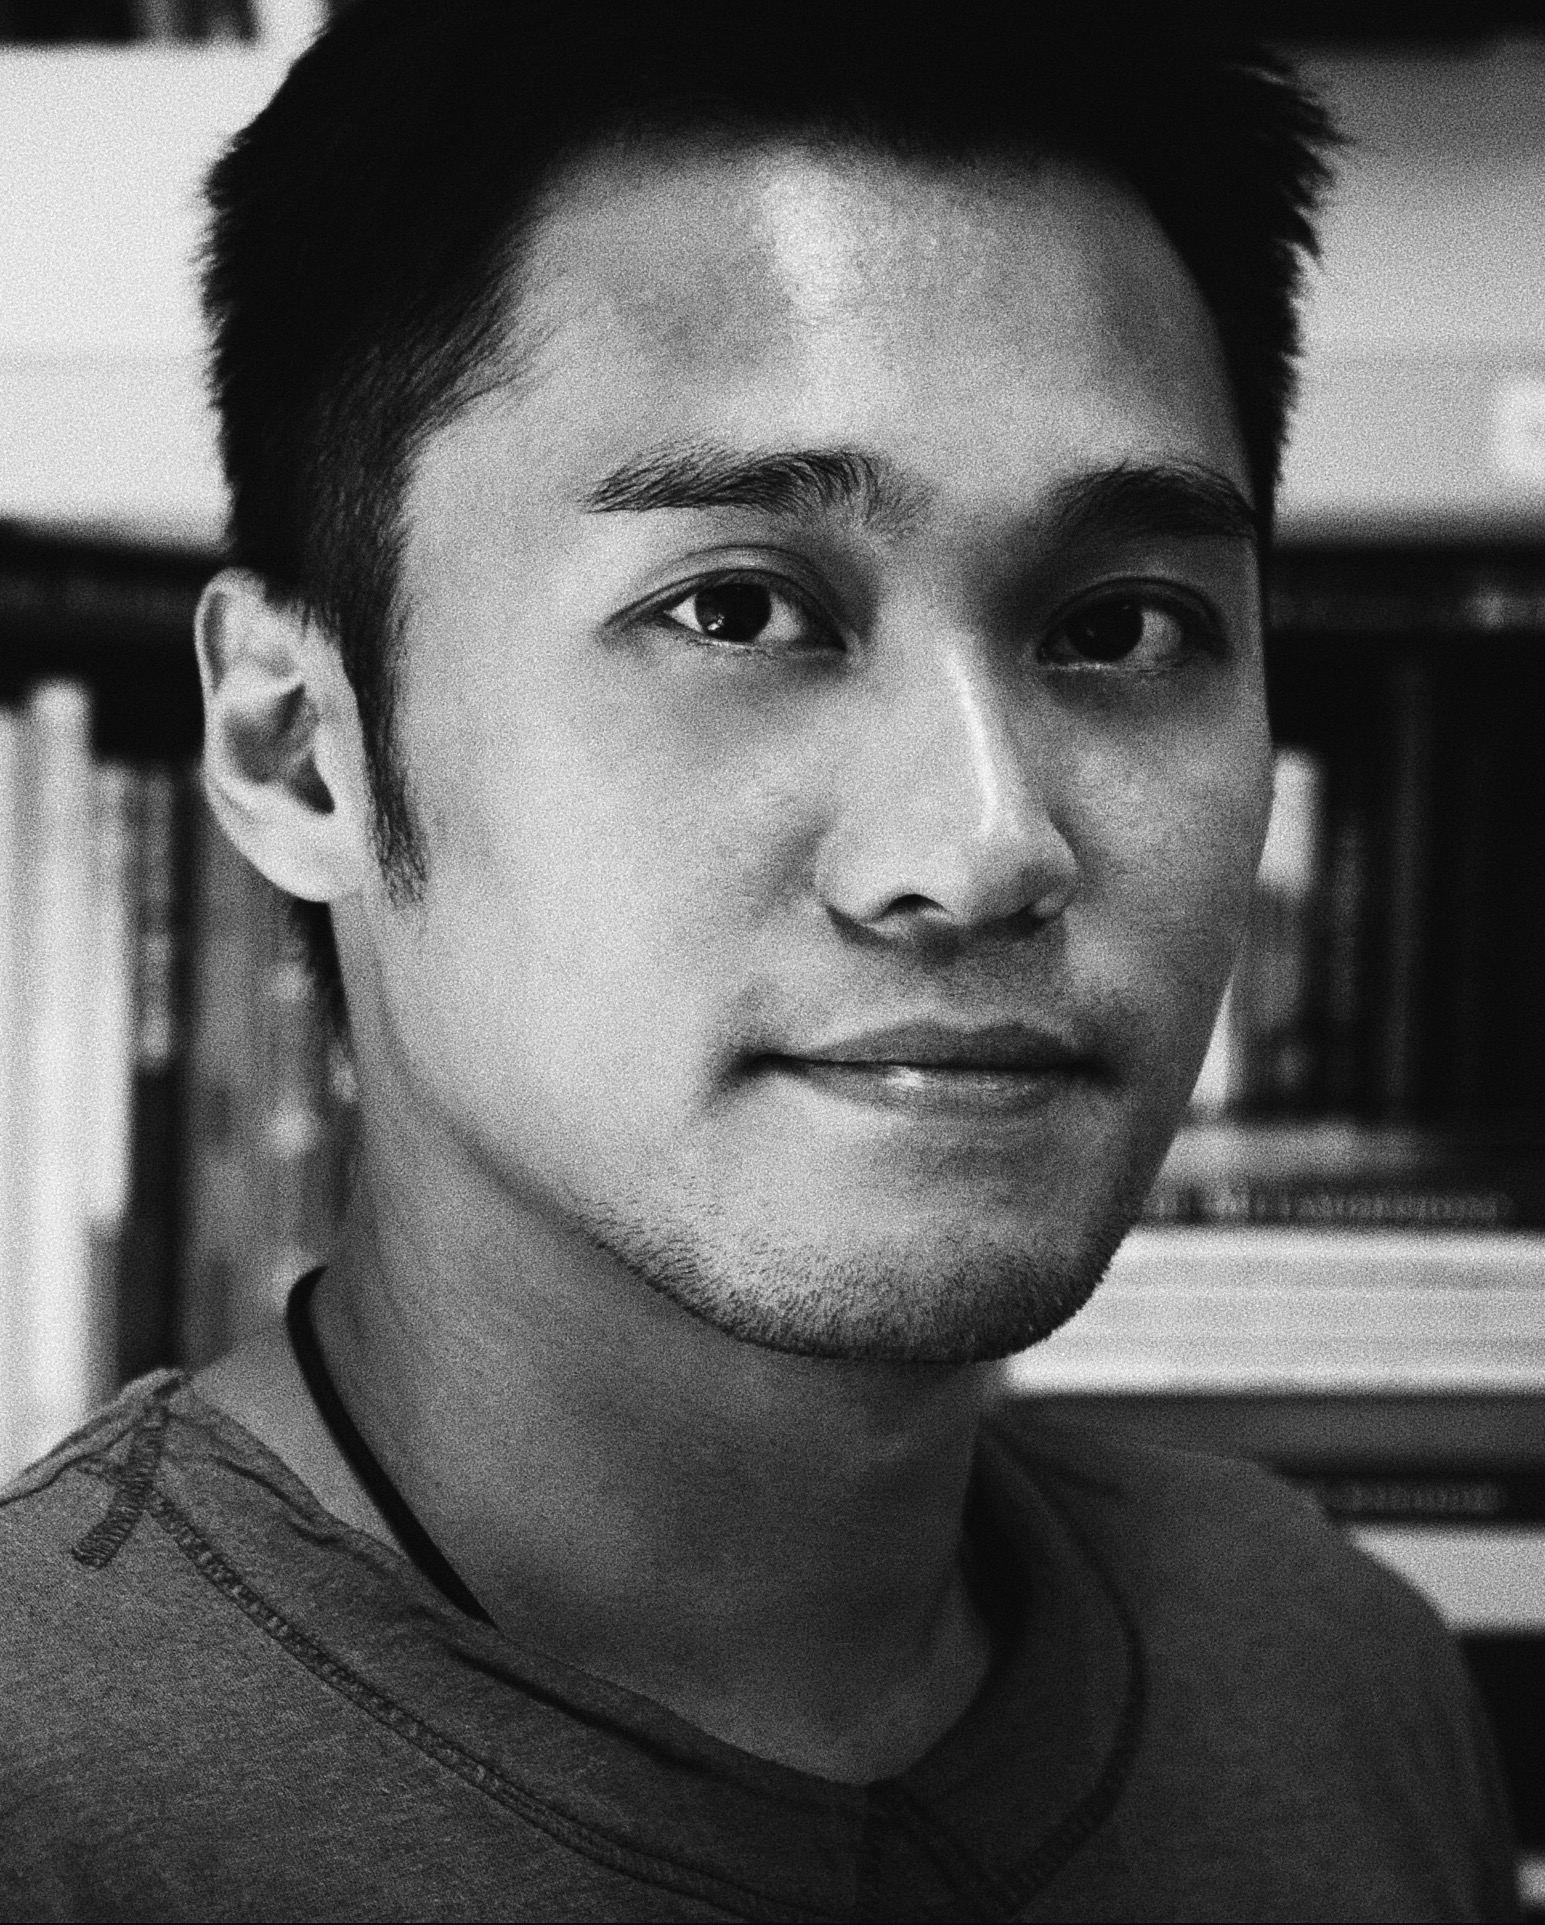 Nicholas Wong  is the author of  Crevasse  (Kaya Press), the winner of the 28th Lambda Literary Award. His poems have appeared or are forthcoming in  Wasafiri ,  Gulf Coast, Third Coast, The Missouri Review Online, Copper Nickel , and others. He teaches at the Education University of Hong Kong, and is a Vice President of PEN HK.